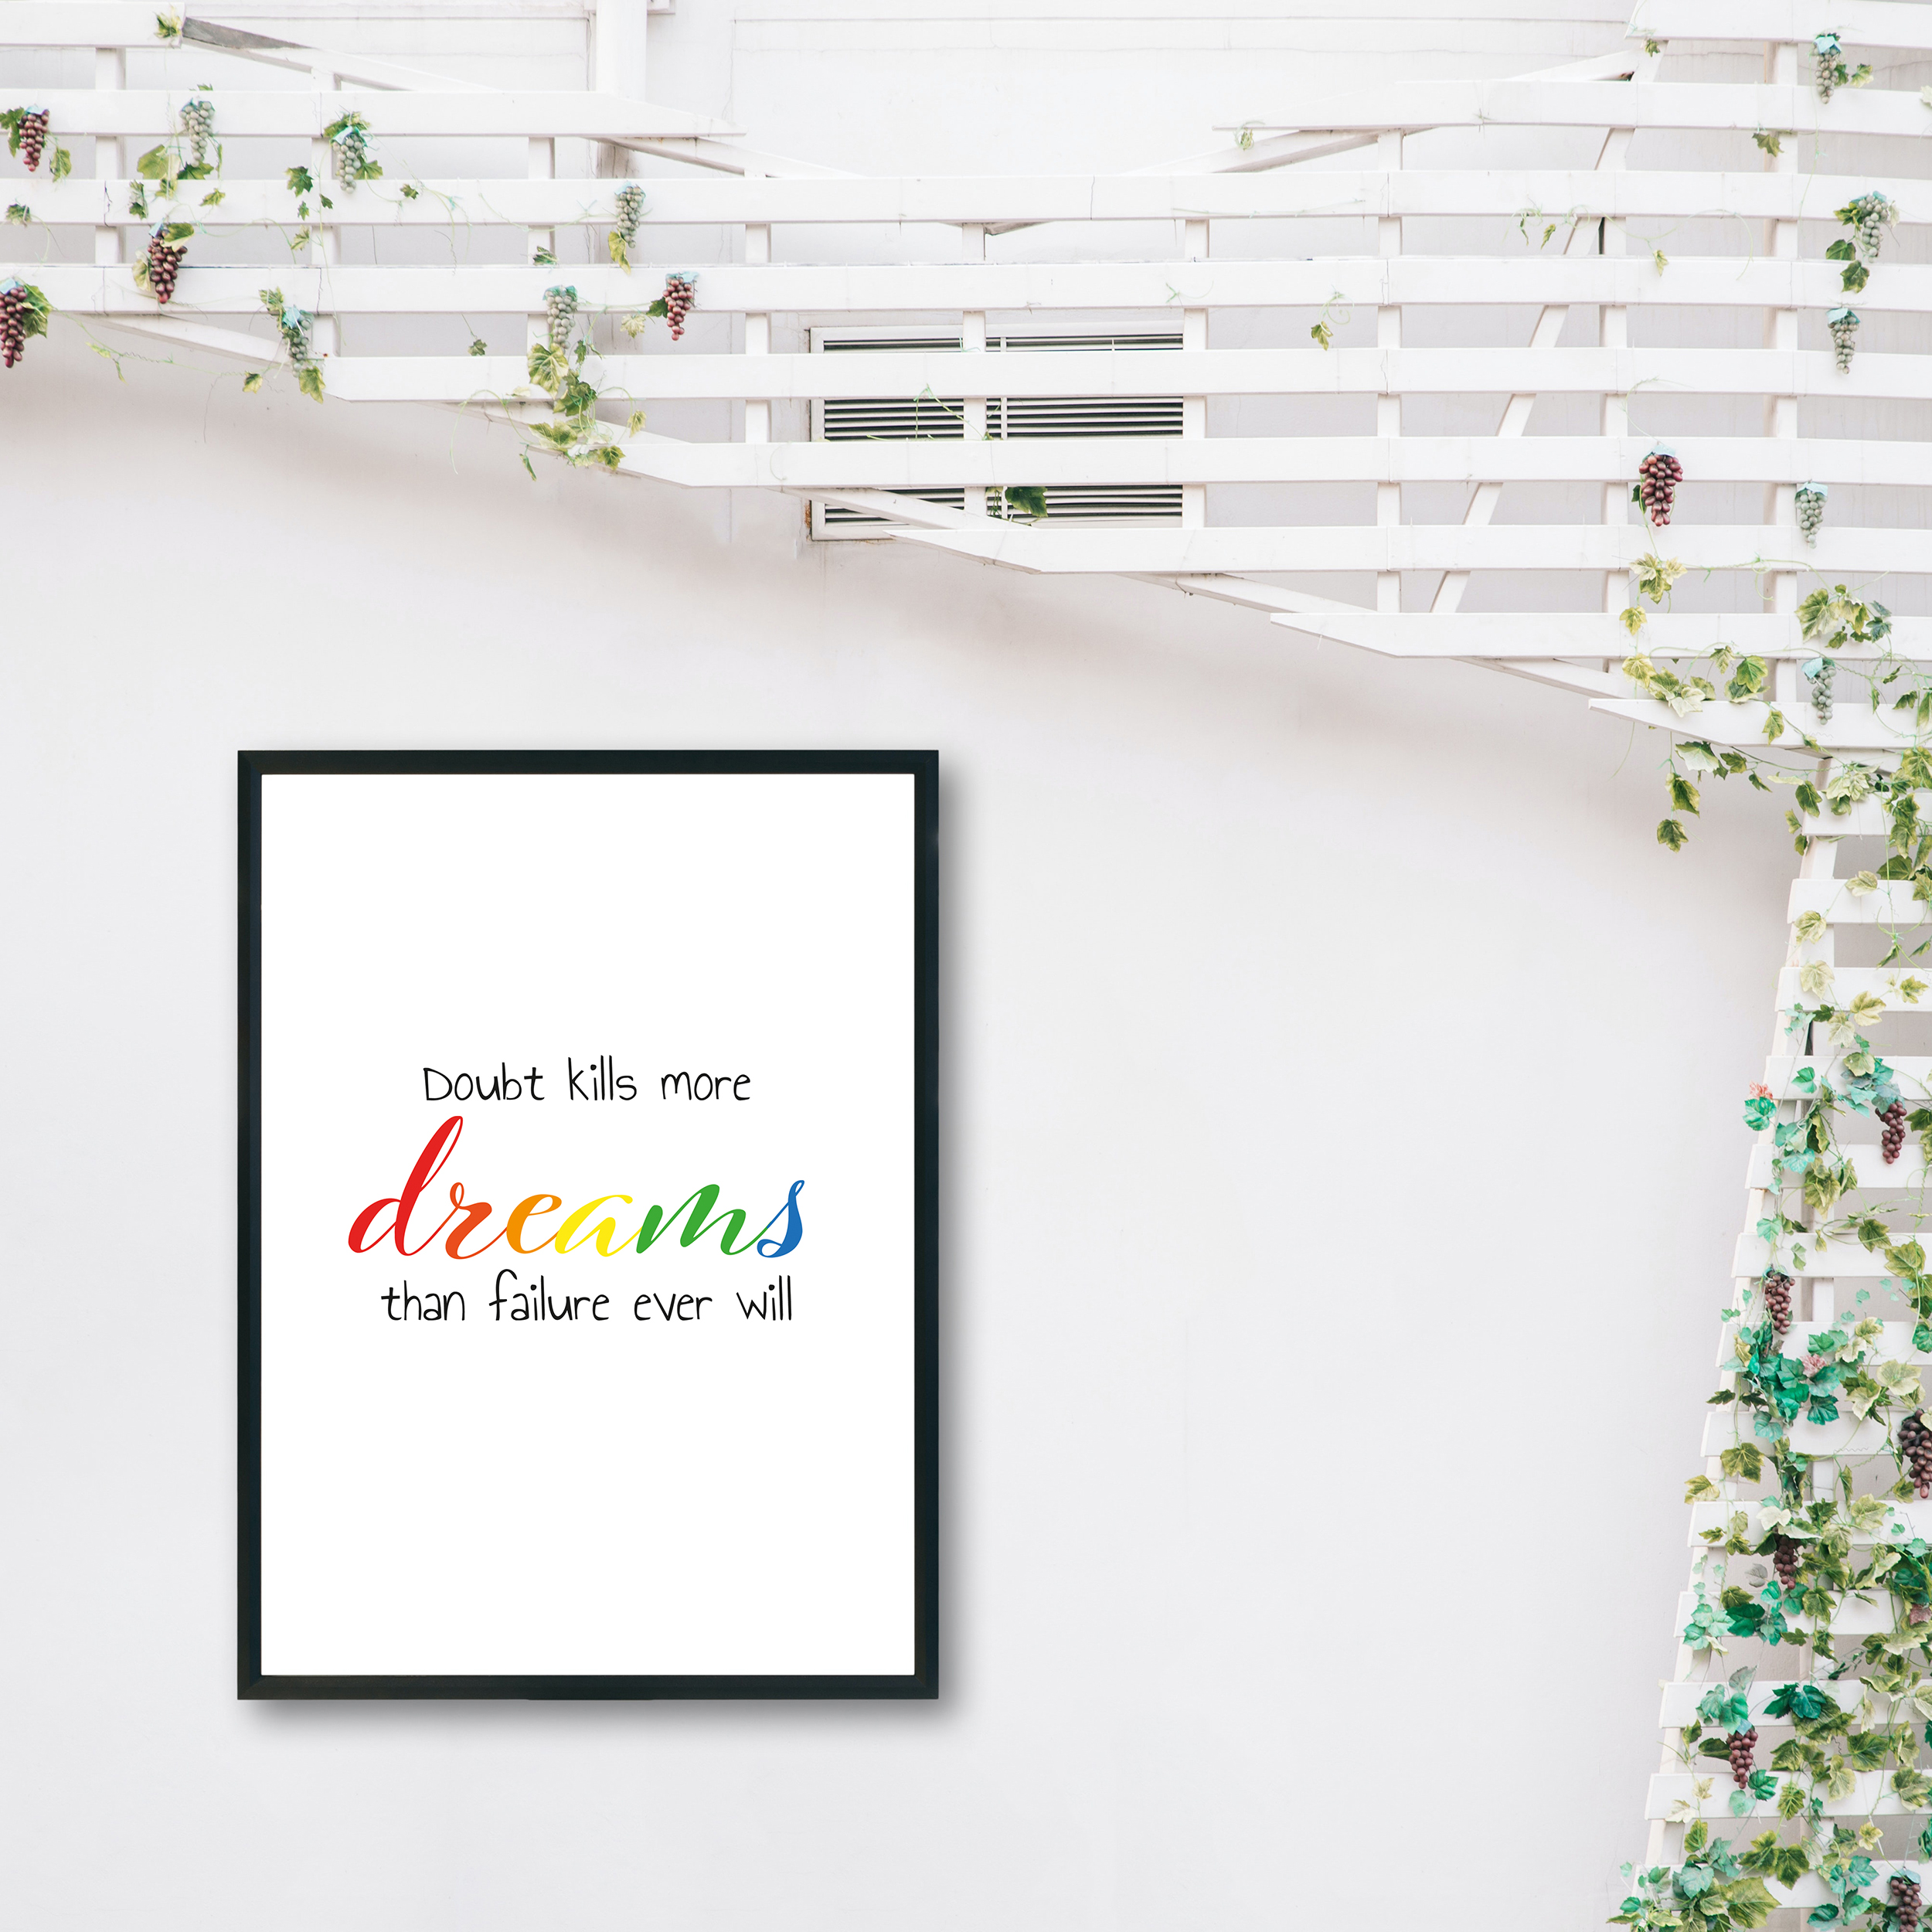 Doubt Kills More Dreams Than Failure Ever Will Rainbow Recycled Wall Print